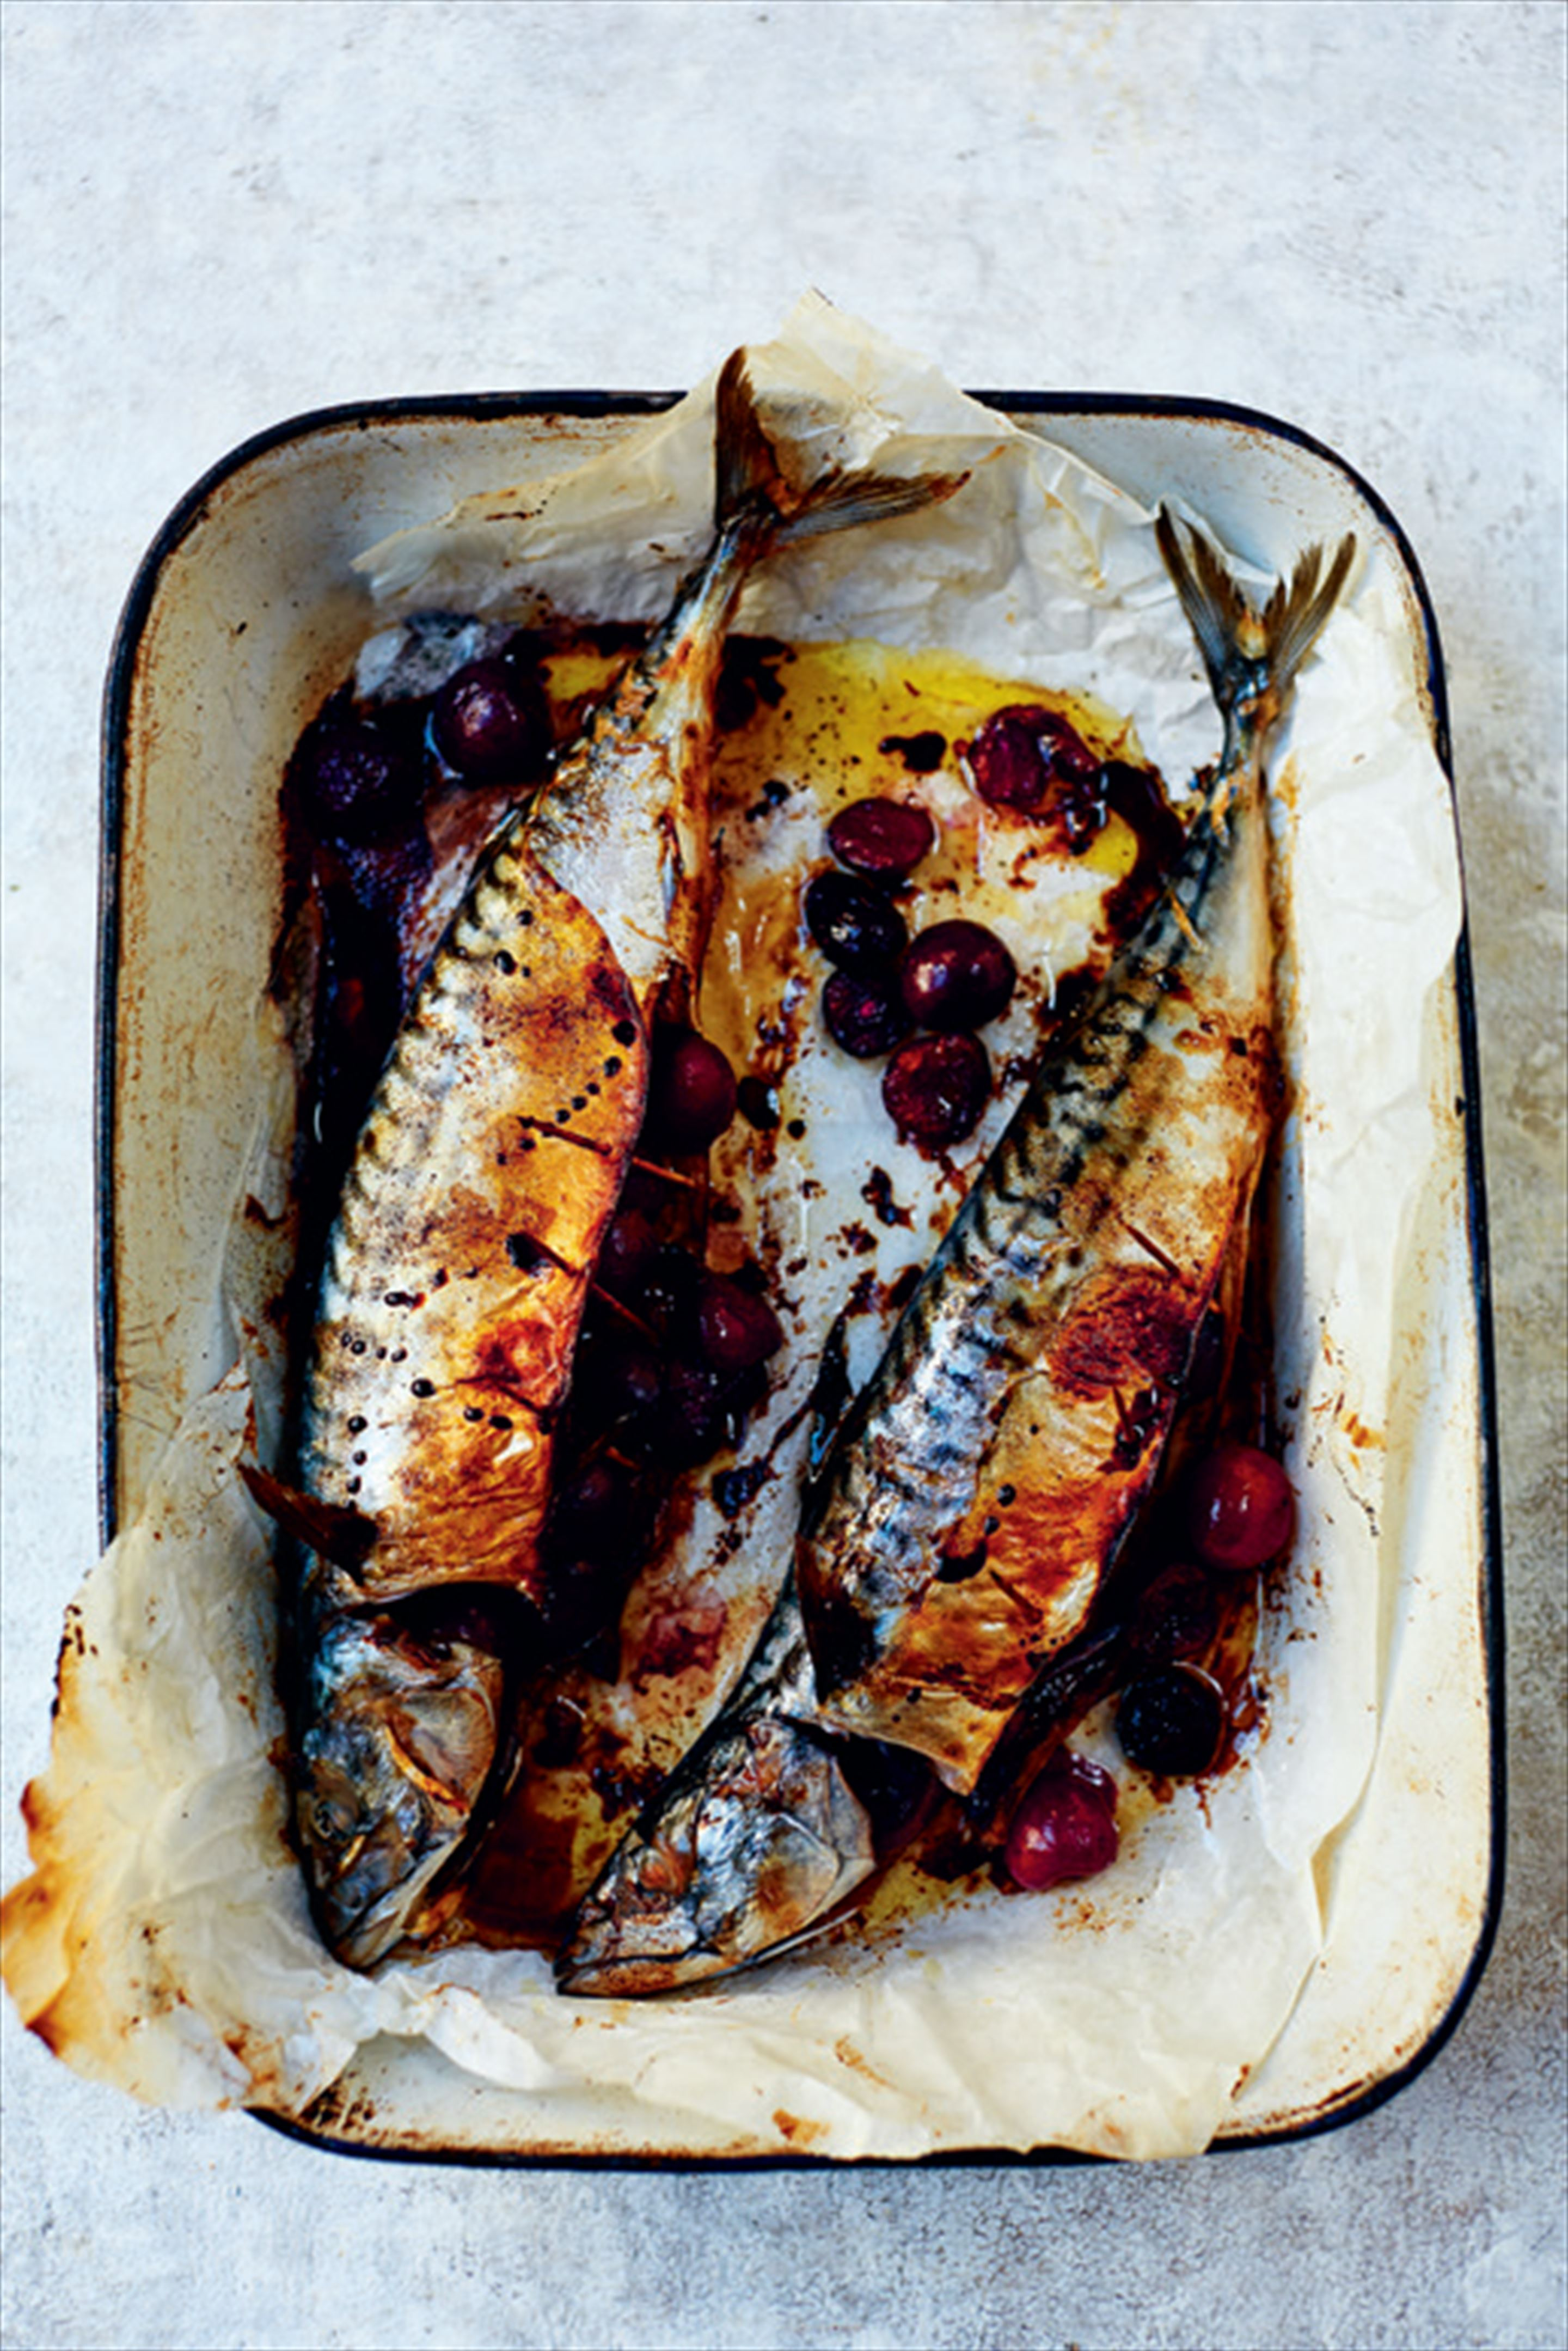 Baked mackerel with wild cherries